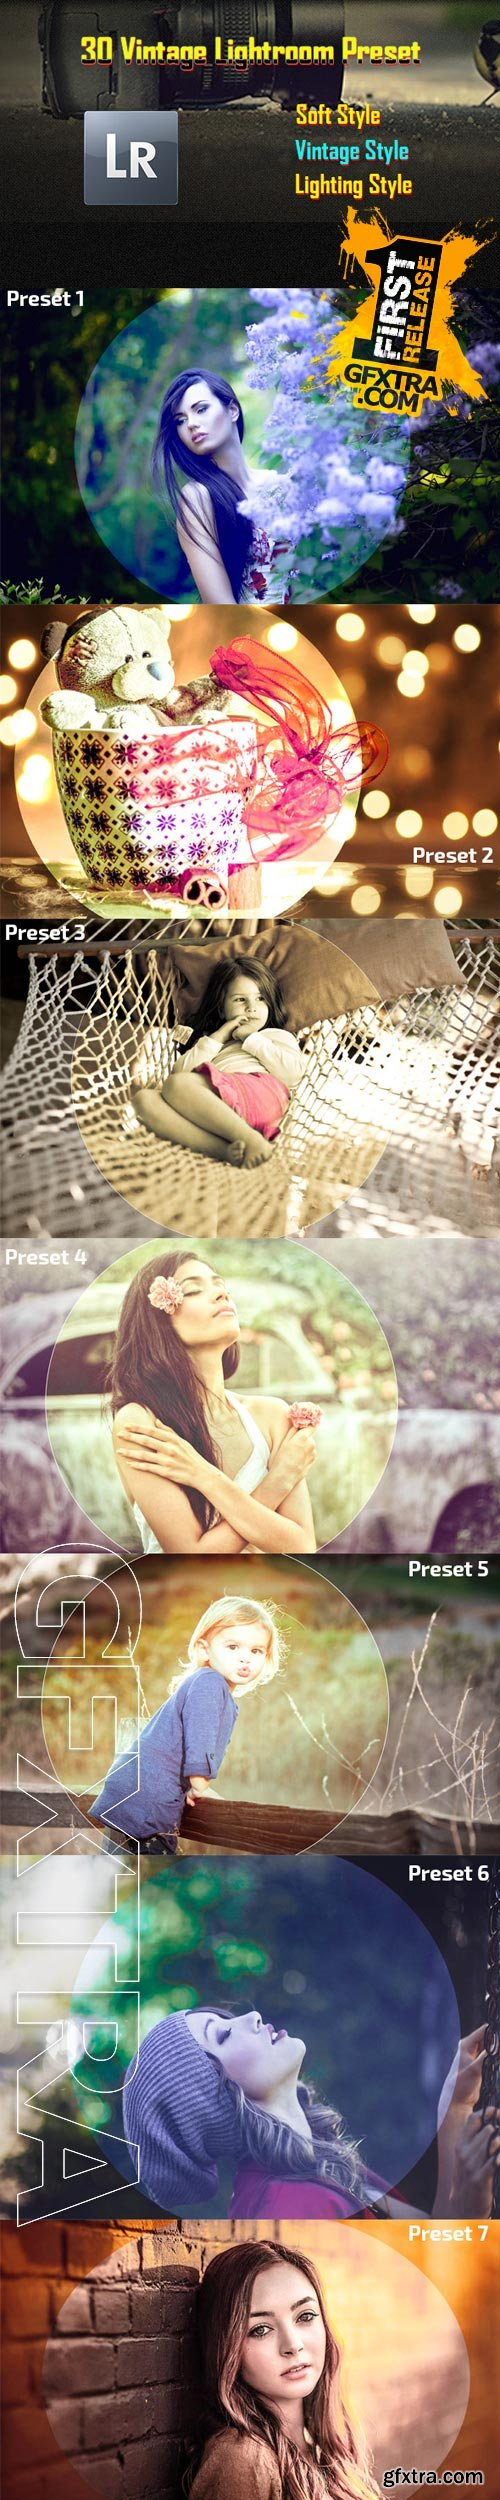 GraphicRiver - 30 Vintage Lightroom Preset 9401390